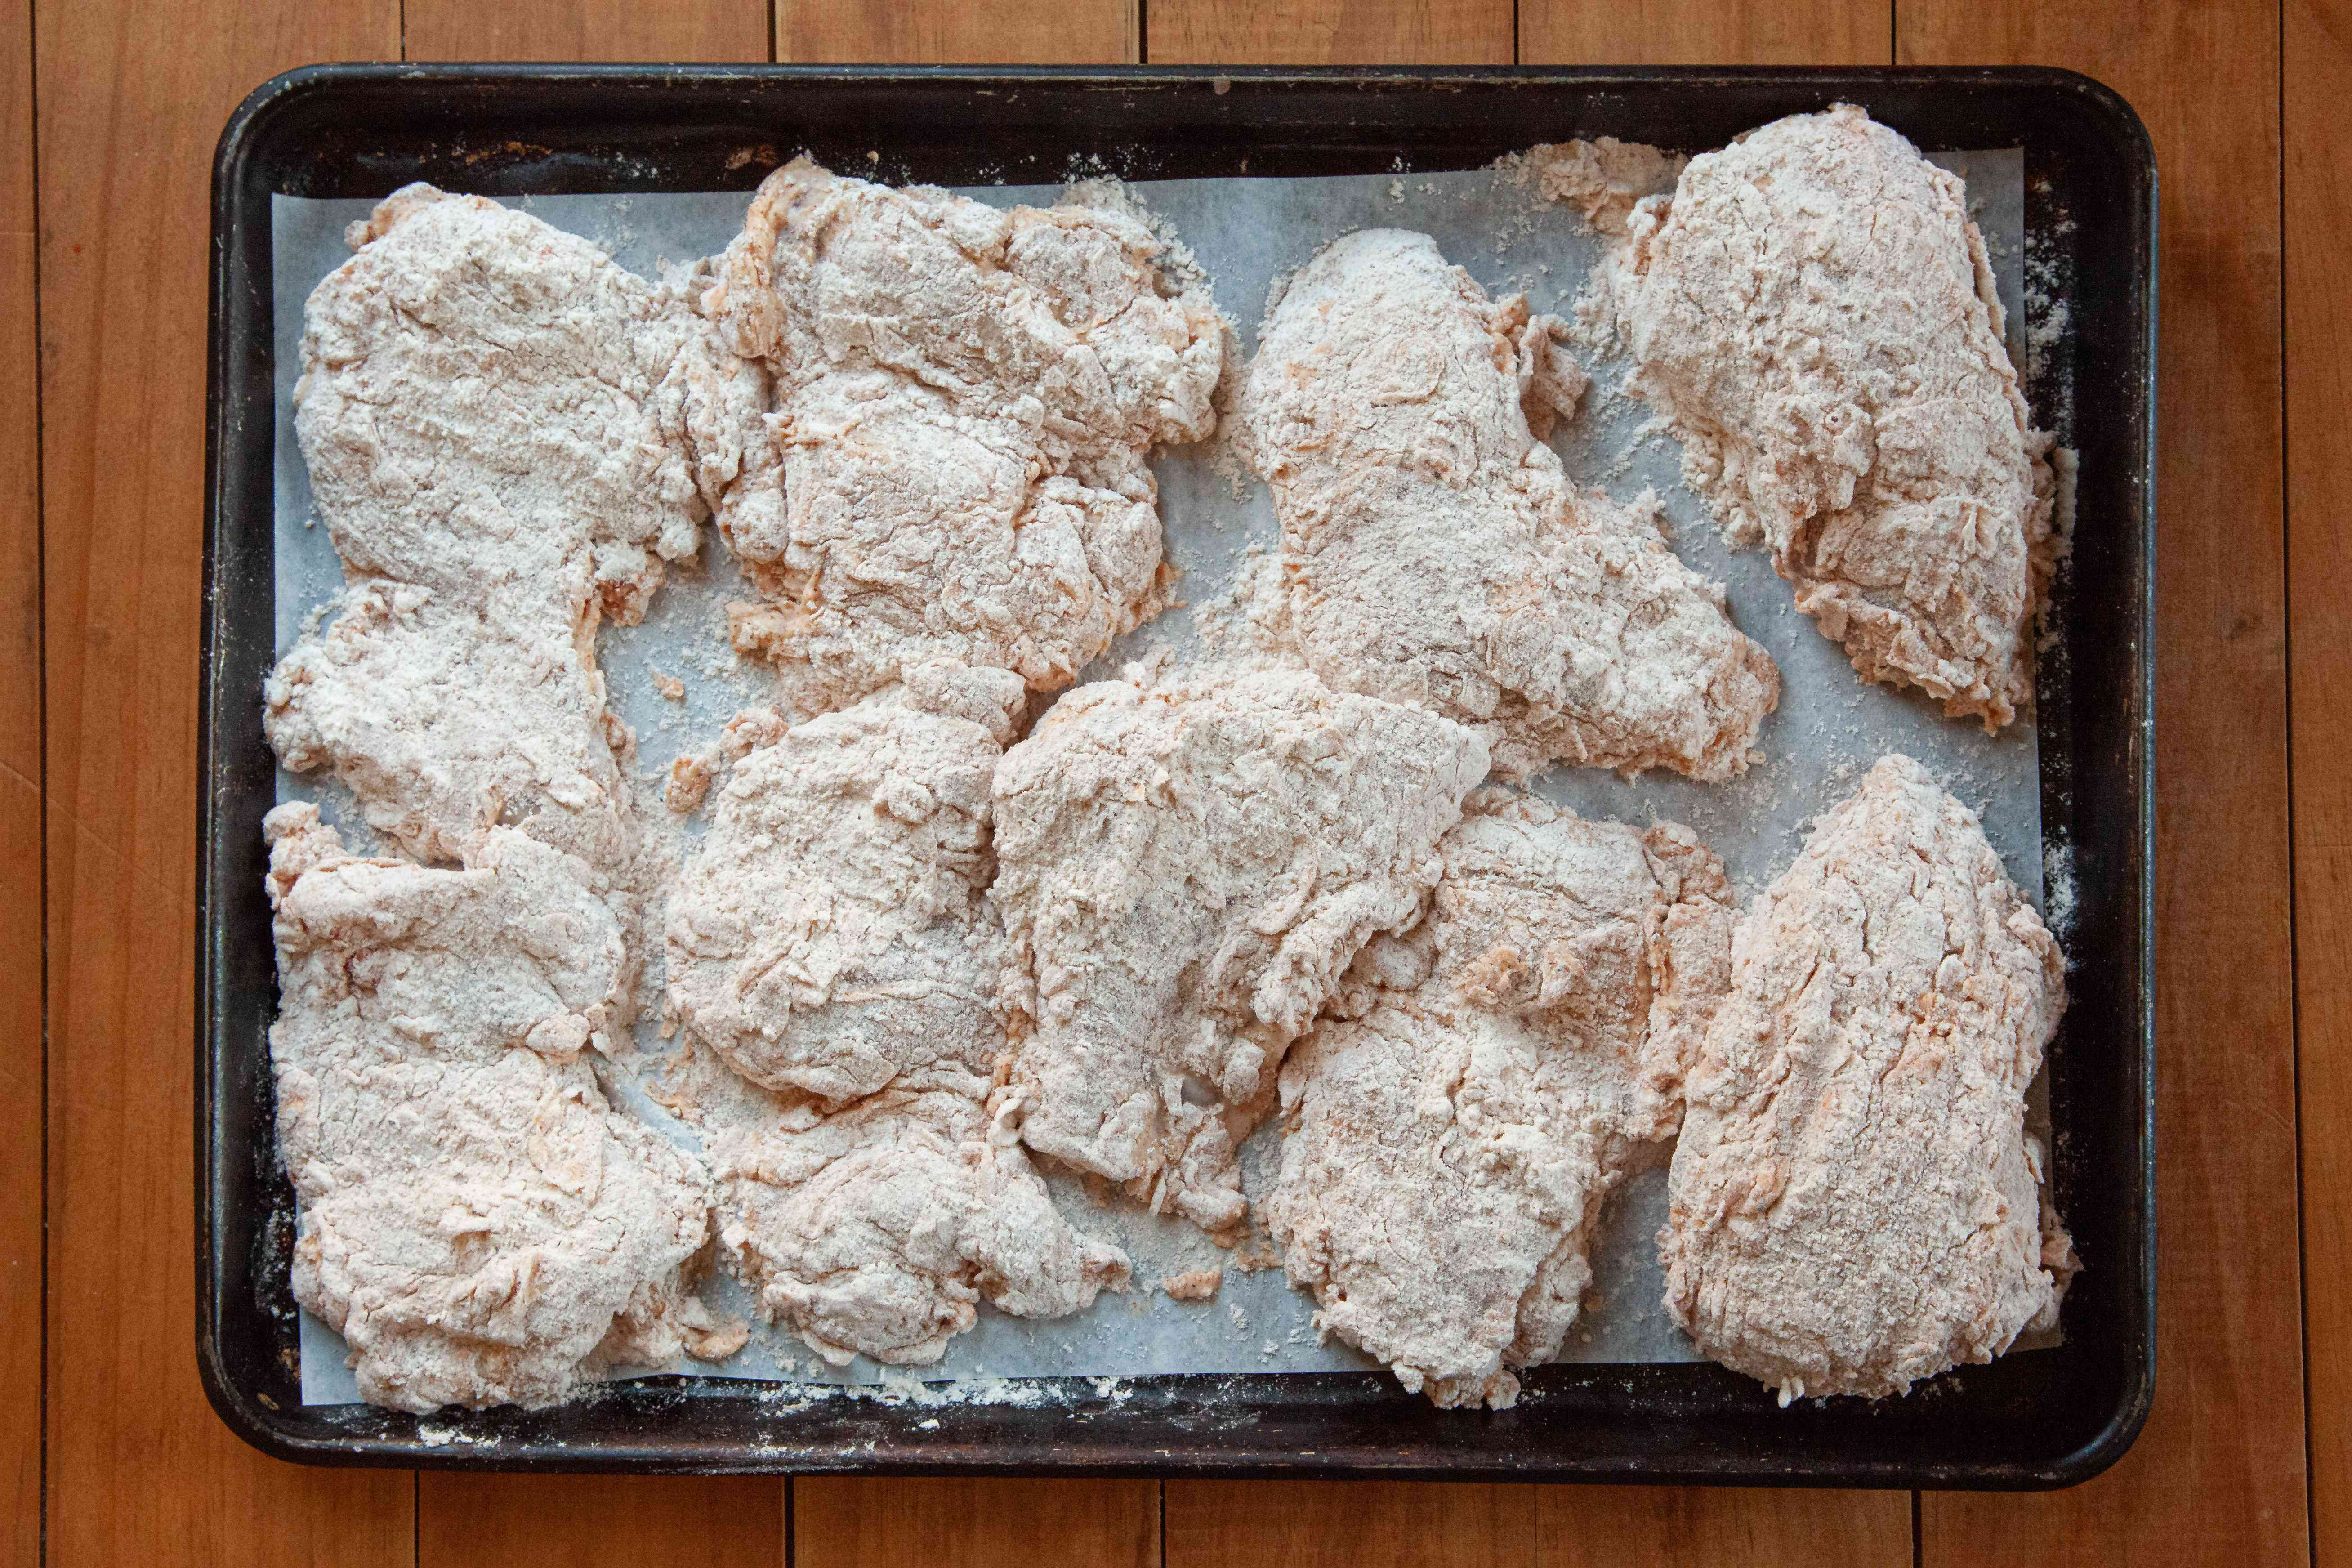 Breaded chicken on a baking tray to make Nashville-style hot chicken.